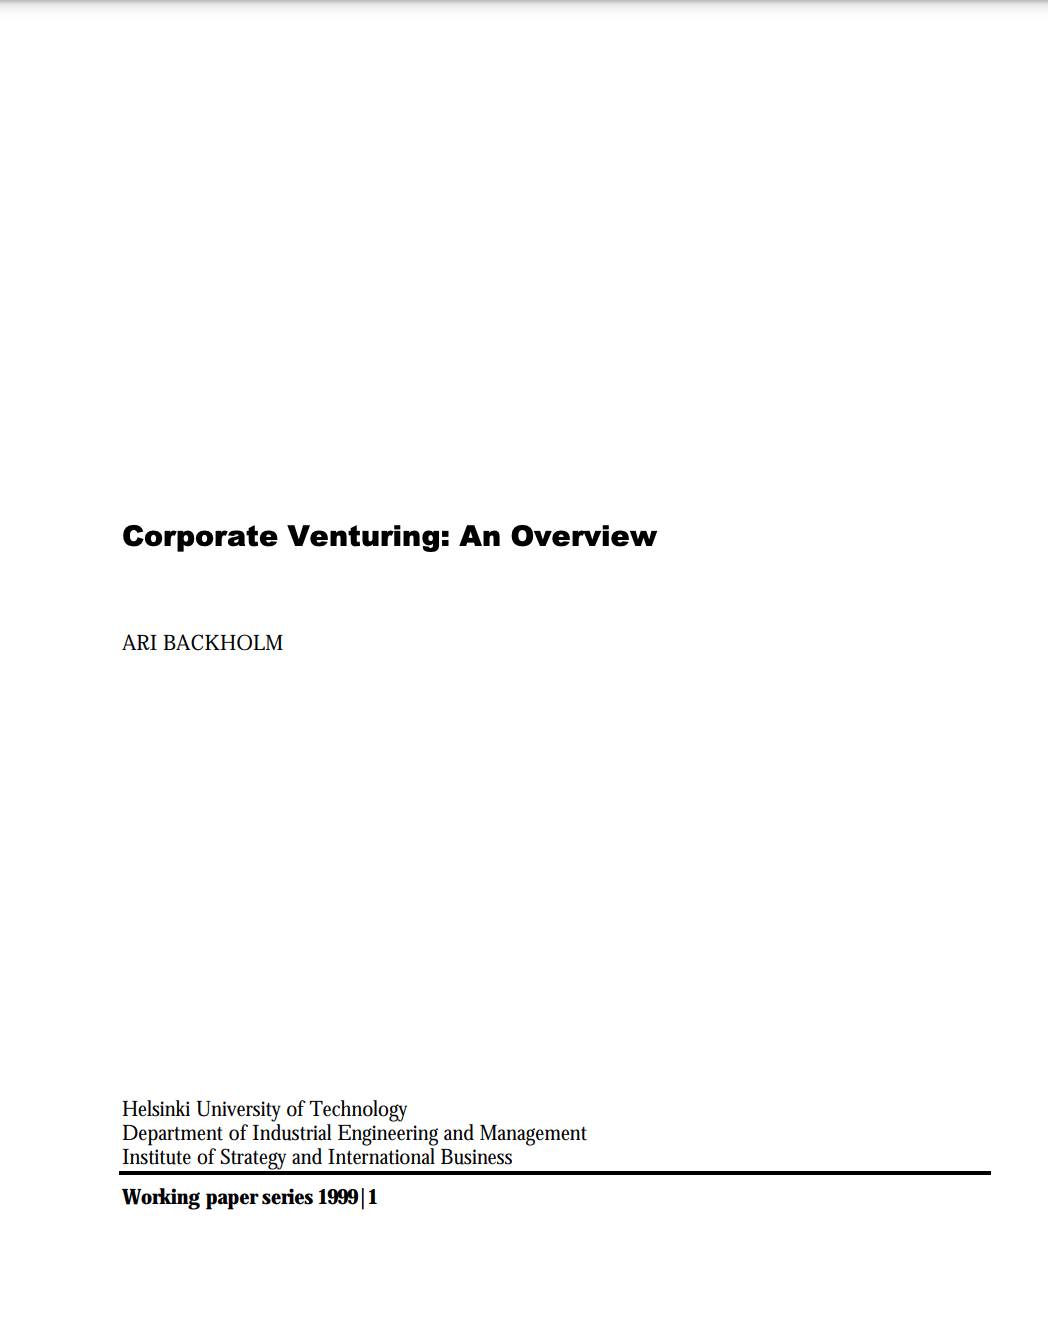 Corporate Venturing: An Overview